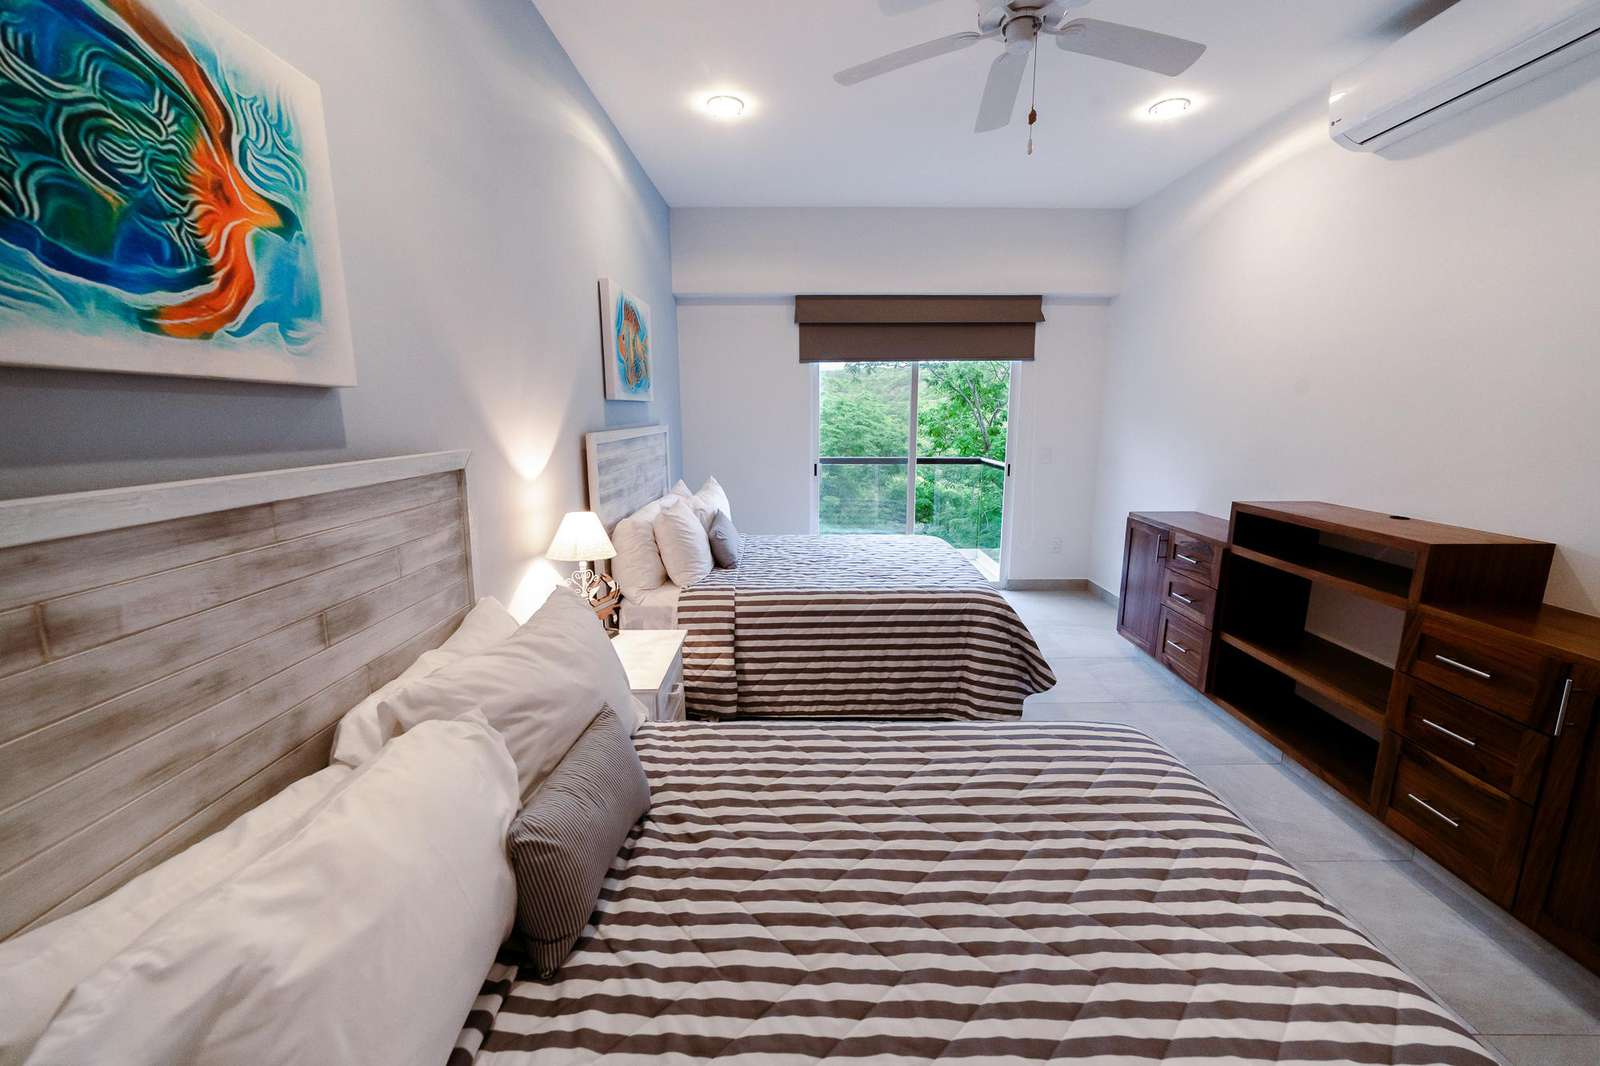 Third bedroom with terrace and ocean view